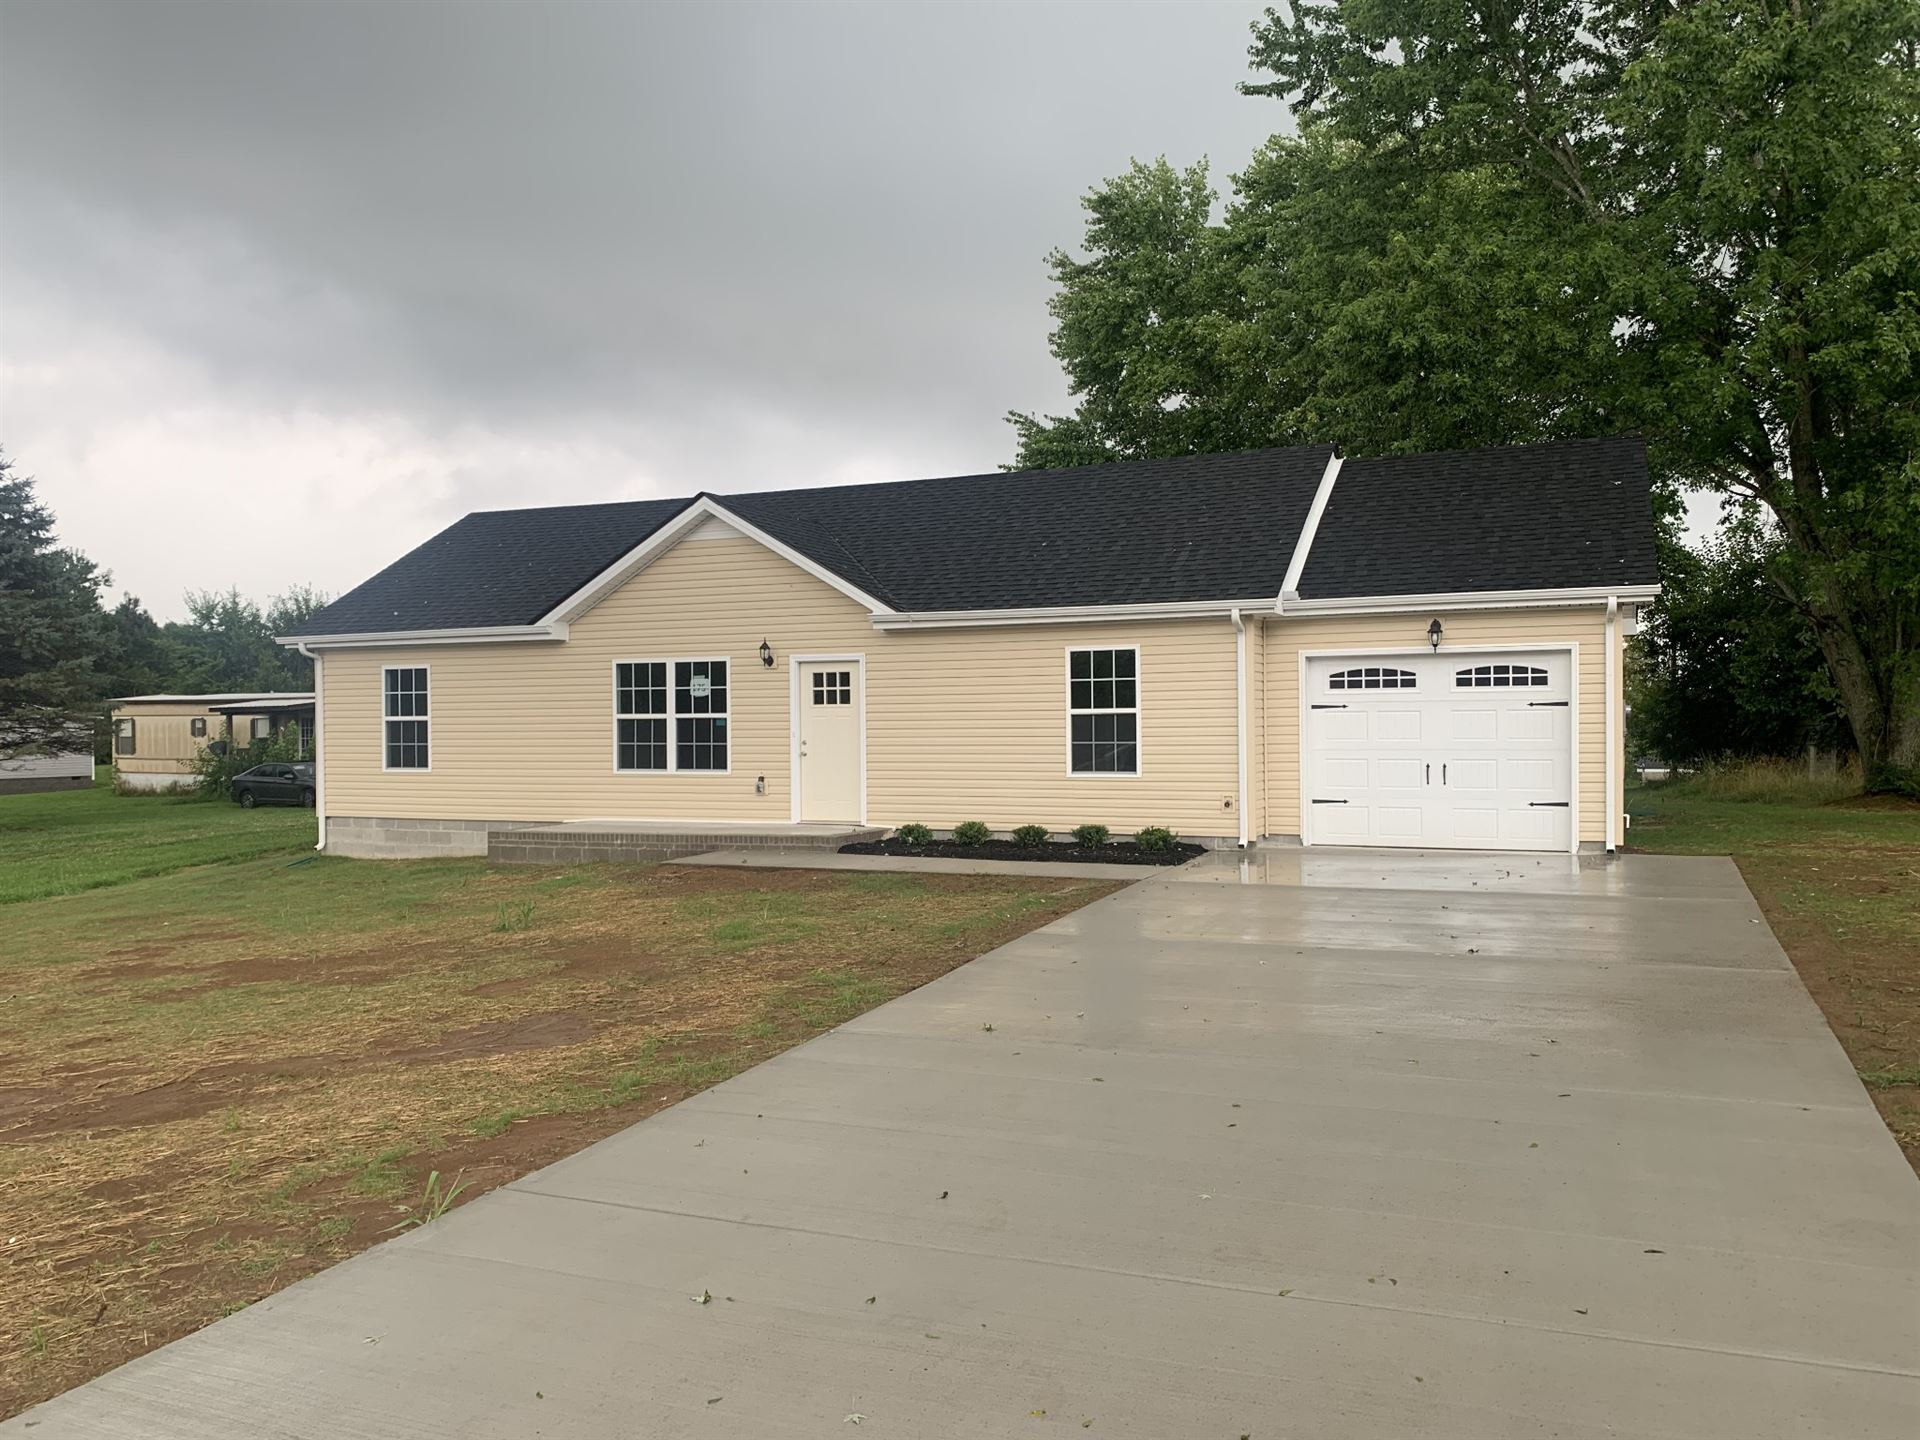 175 ARKANSAS AVE, Oak Grove, KY 42262 - MLS#: 2224190